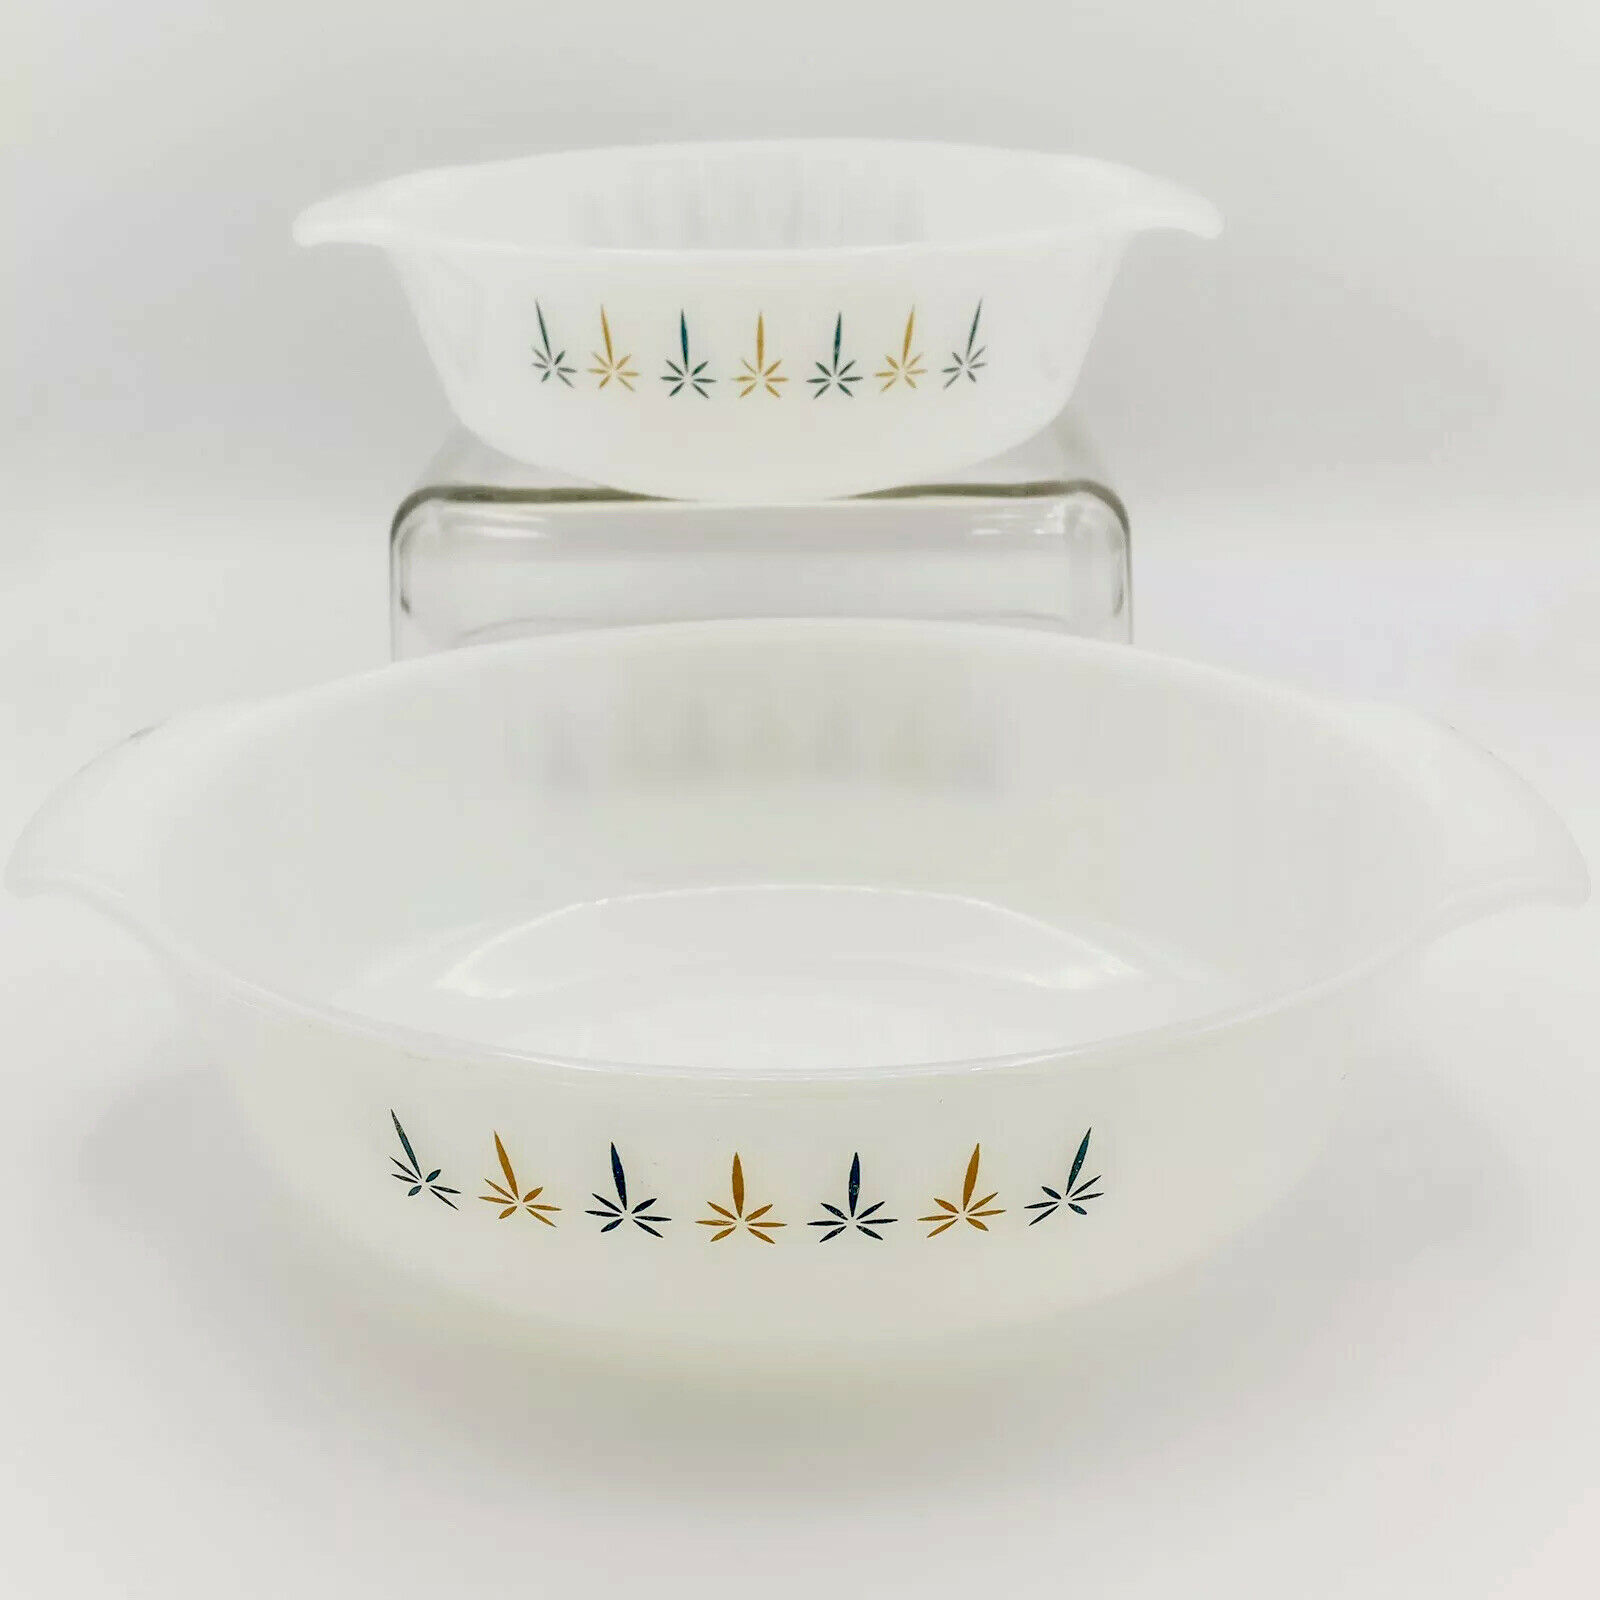 Vintage Anchor Hocking Fire King Candle Glow 1 12 Quart Casserole Dish #437 with Metal and Wood Holder